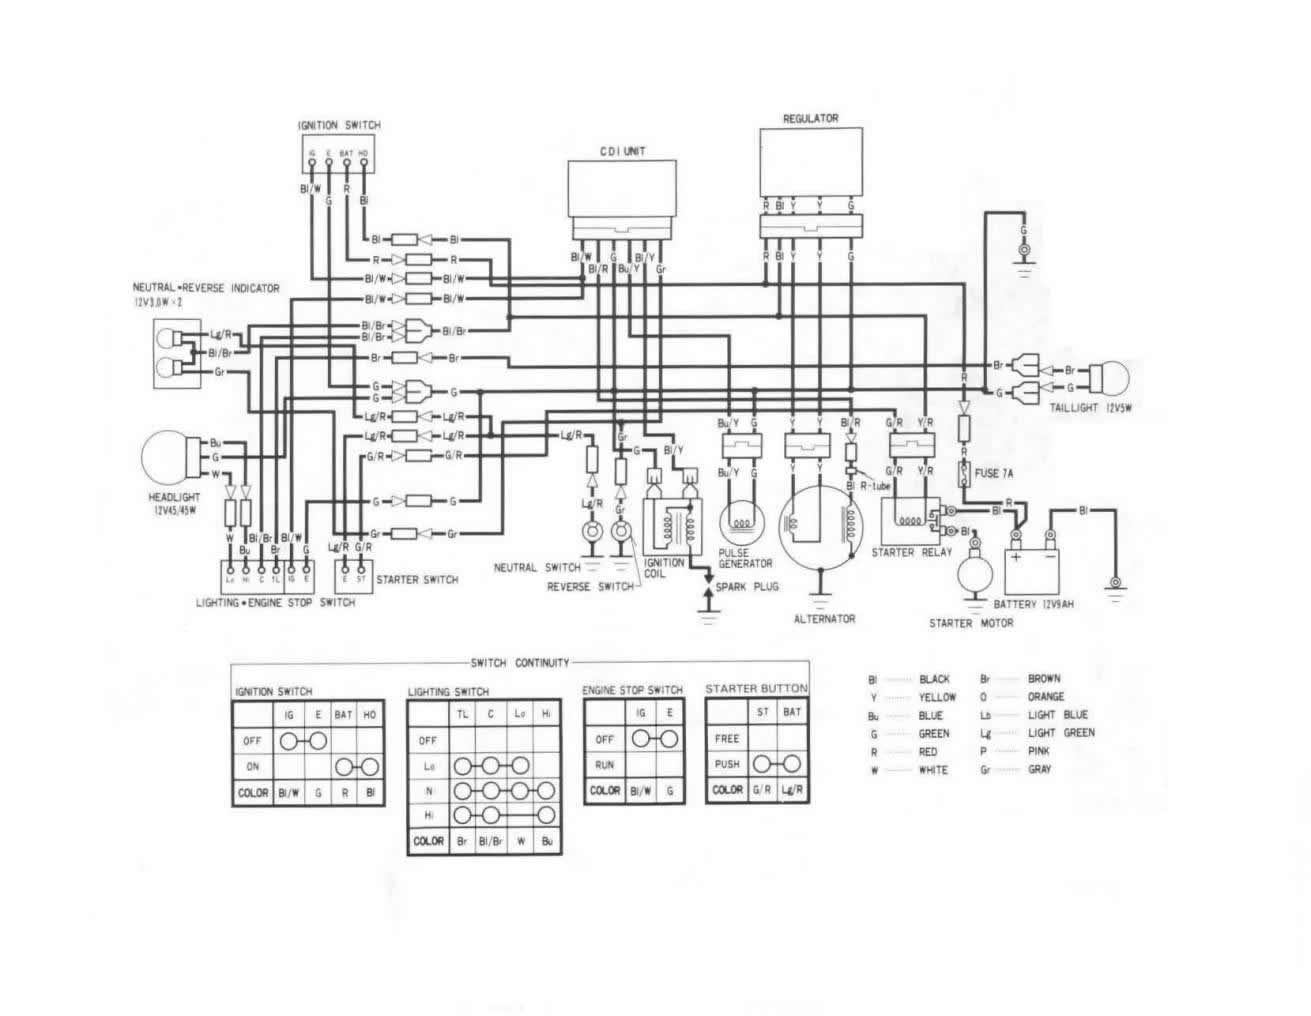 hight resolution of trx300 wiring diagram wiring diagram honda trx 300 atv wiring diagram 1991